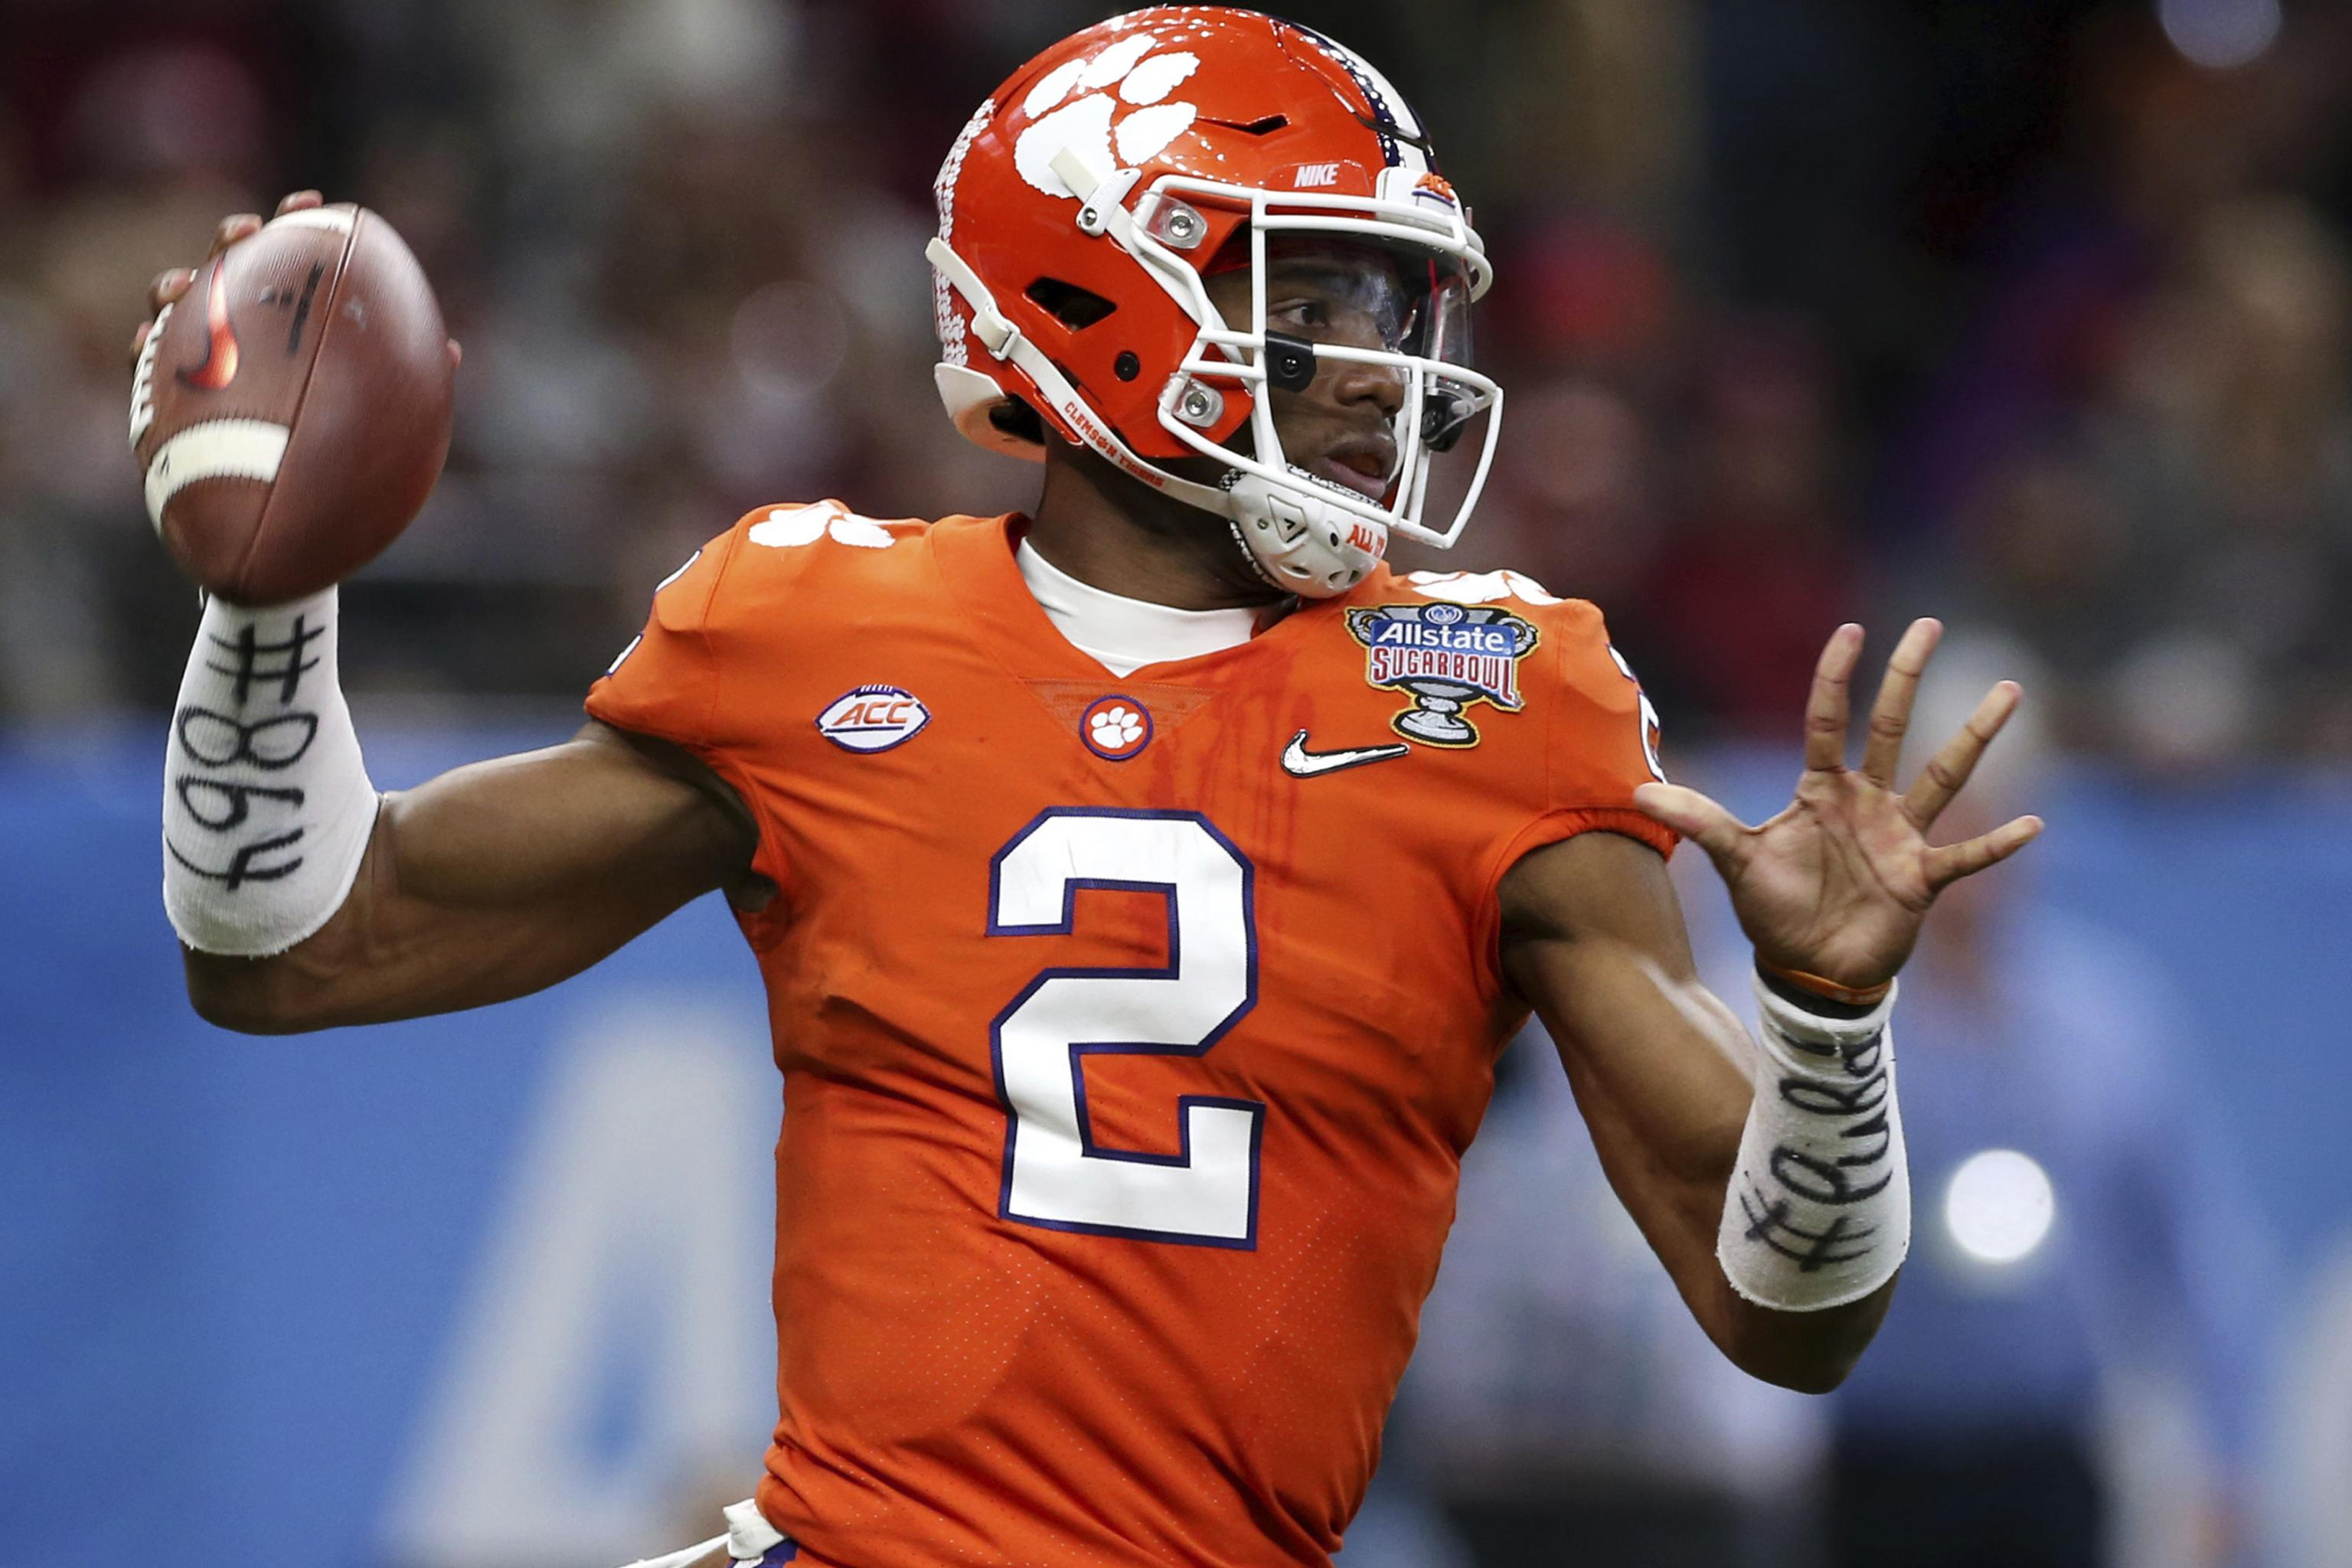 half off e4324 d6117 Nike, Clemson Agree to 10-Year, $58 Million Apparel Contract ...